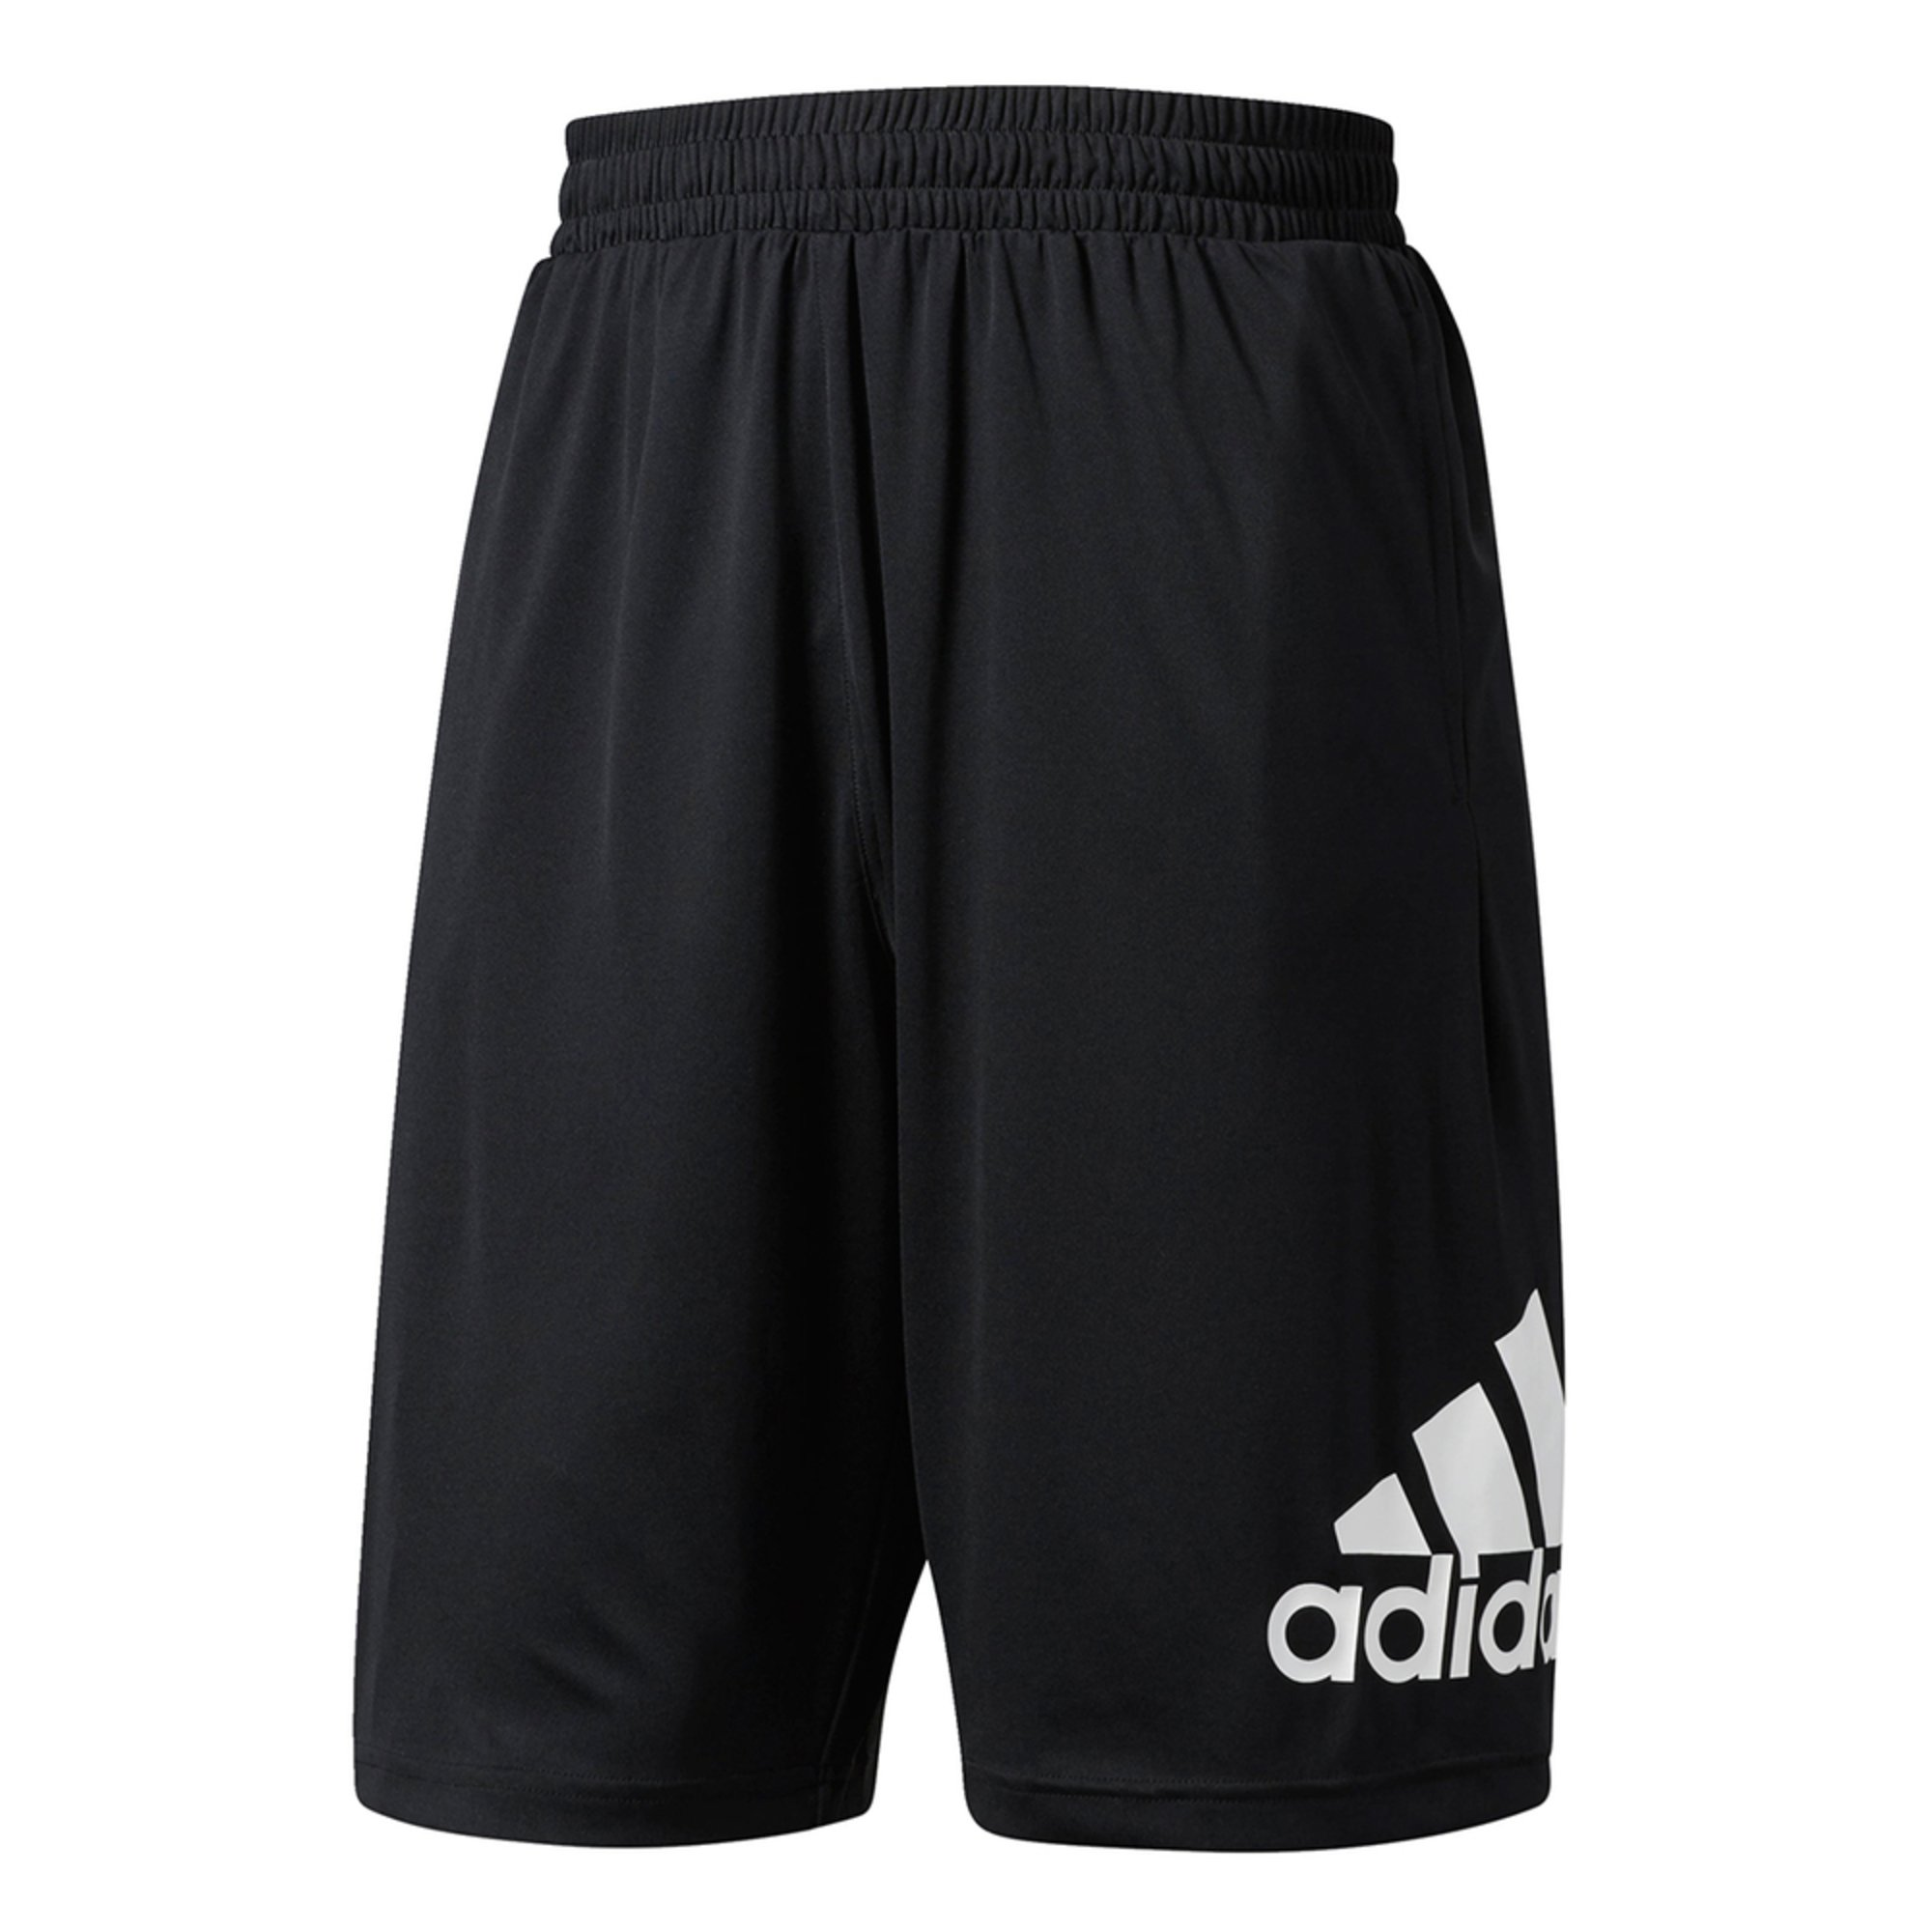 Shorts Dress your son in the latest apparel from Under Armour, The North Face, Columbia, Carhartt and more - all available at Sports Unlimited. Seasons change, kids grow and styles evolve, but our selection of some of the top sports brands is always here to help.